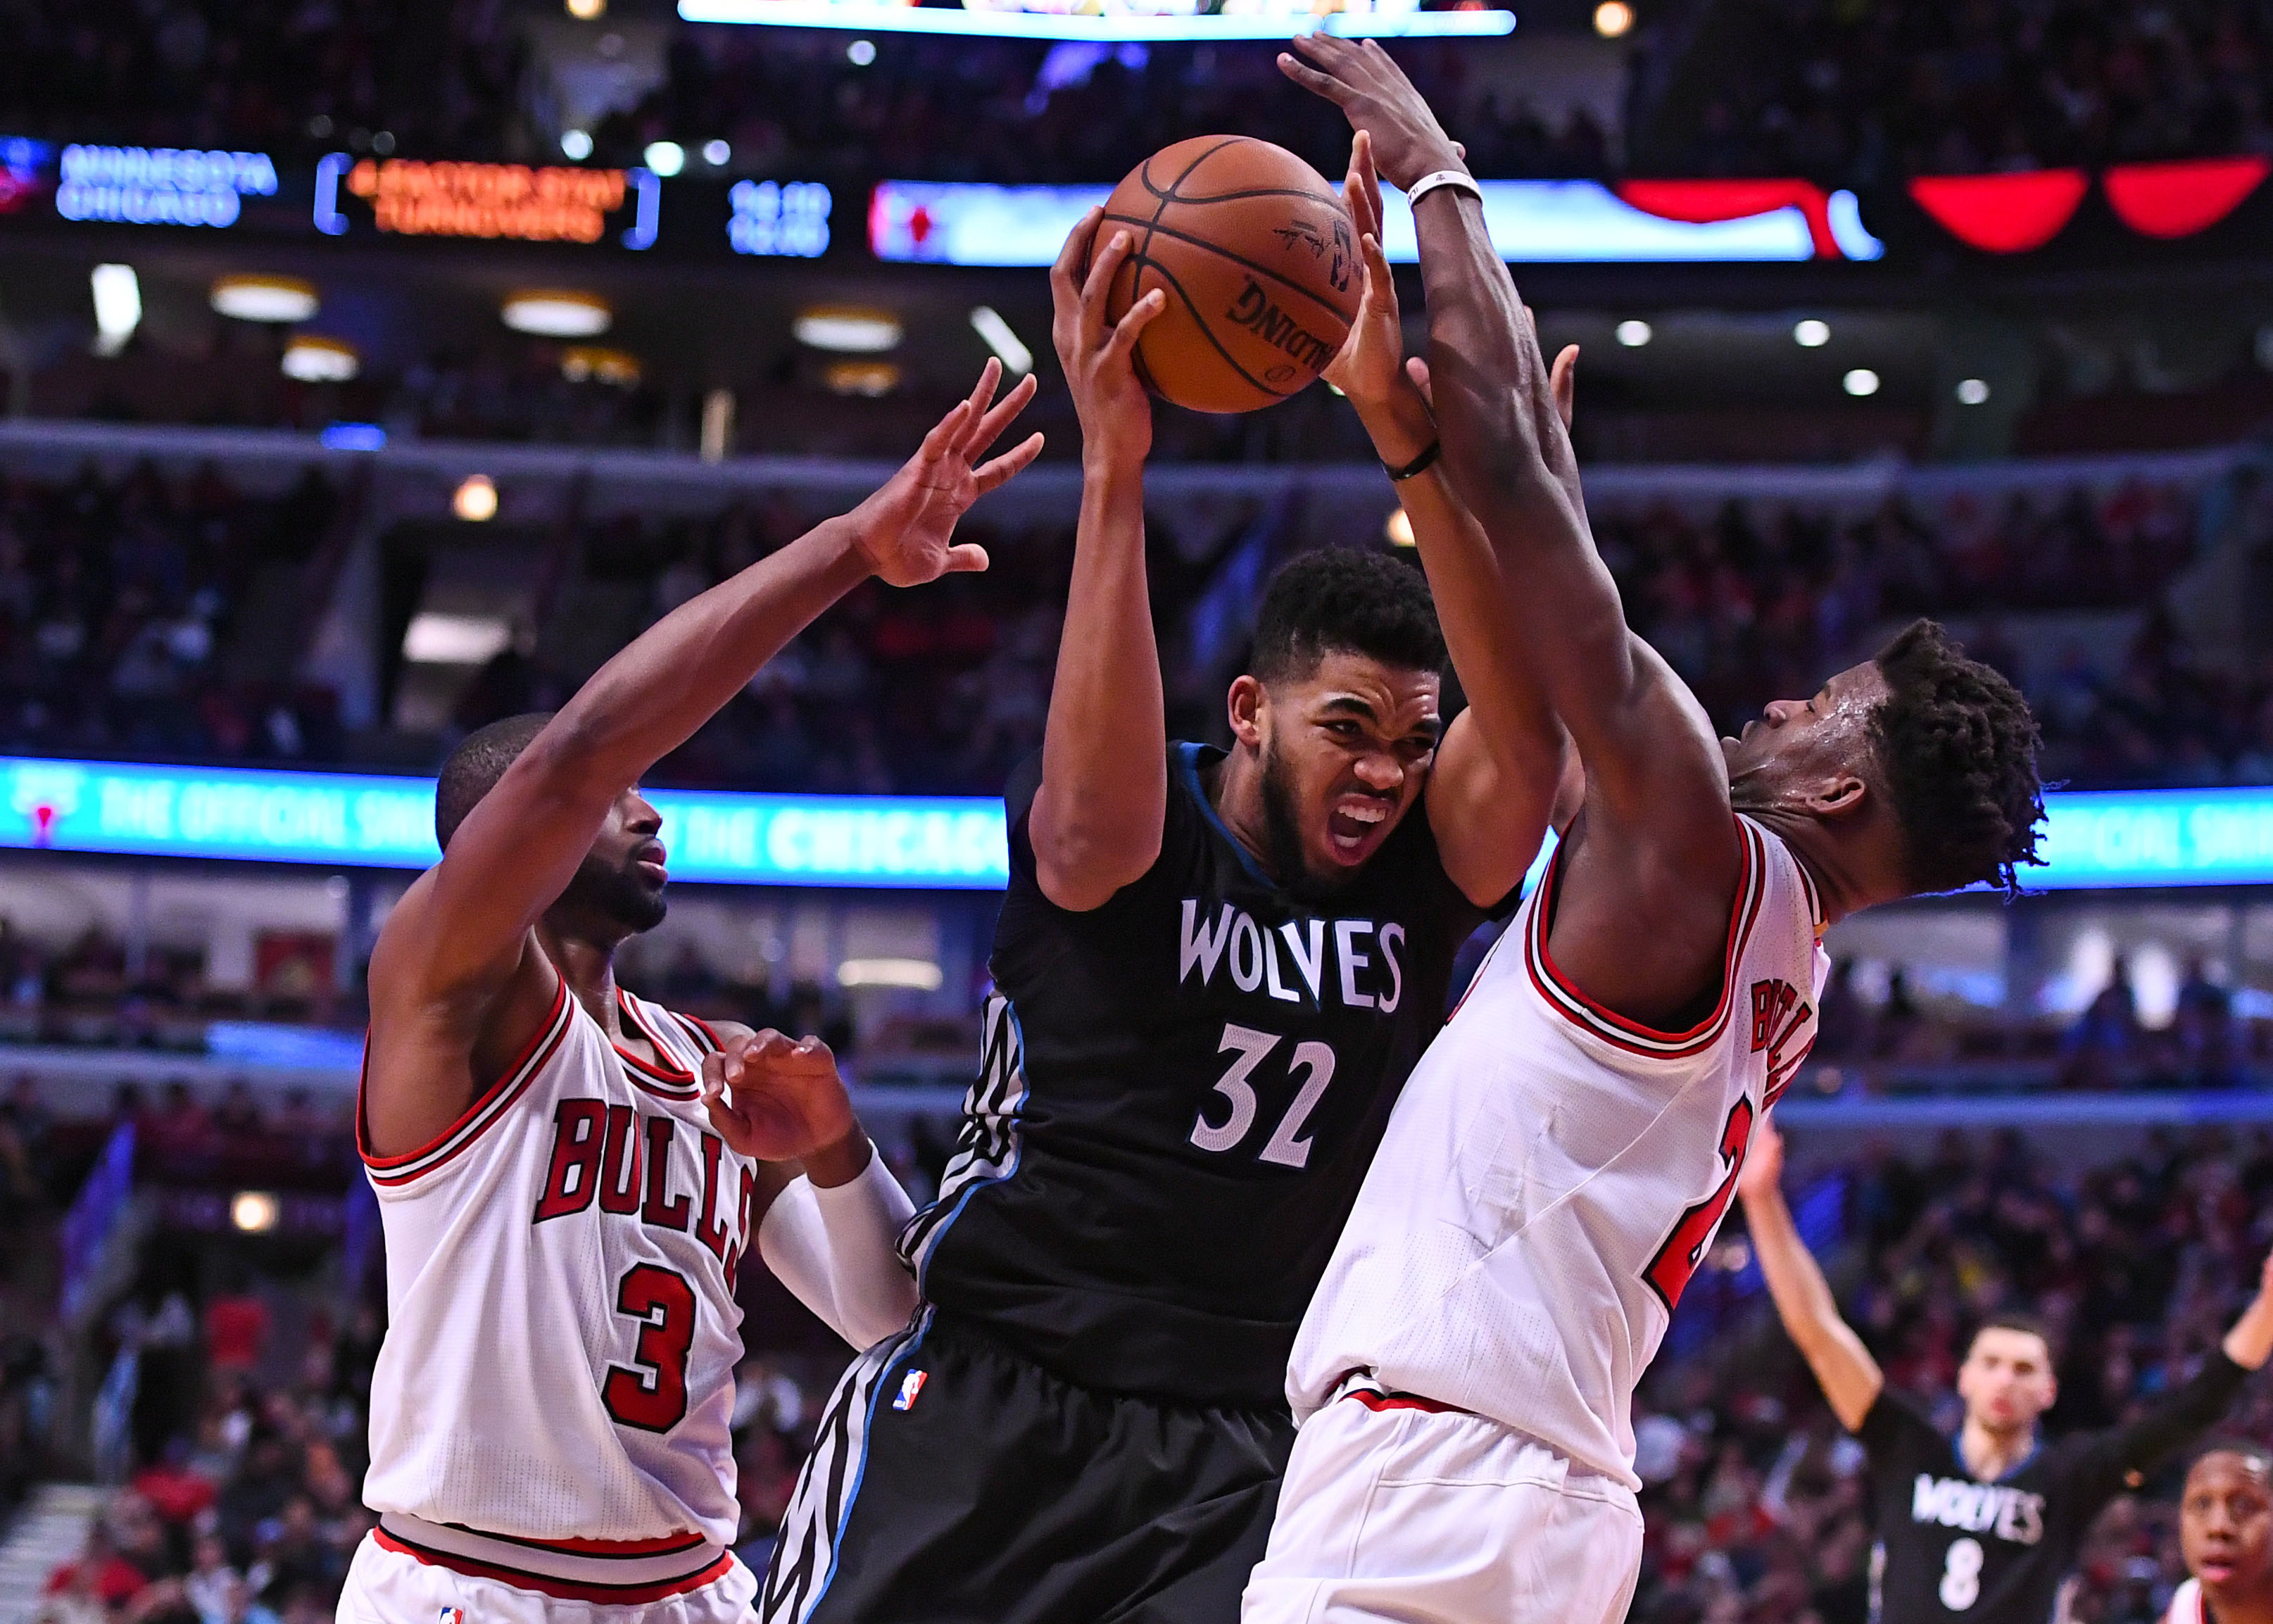 Bulls trade Butler to Timberwolves